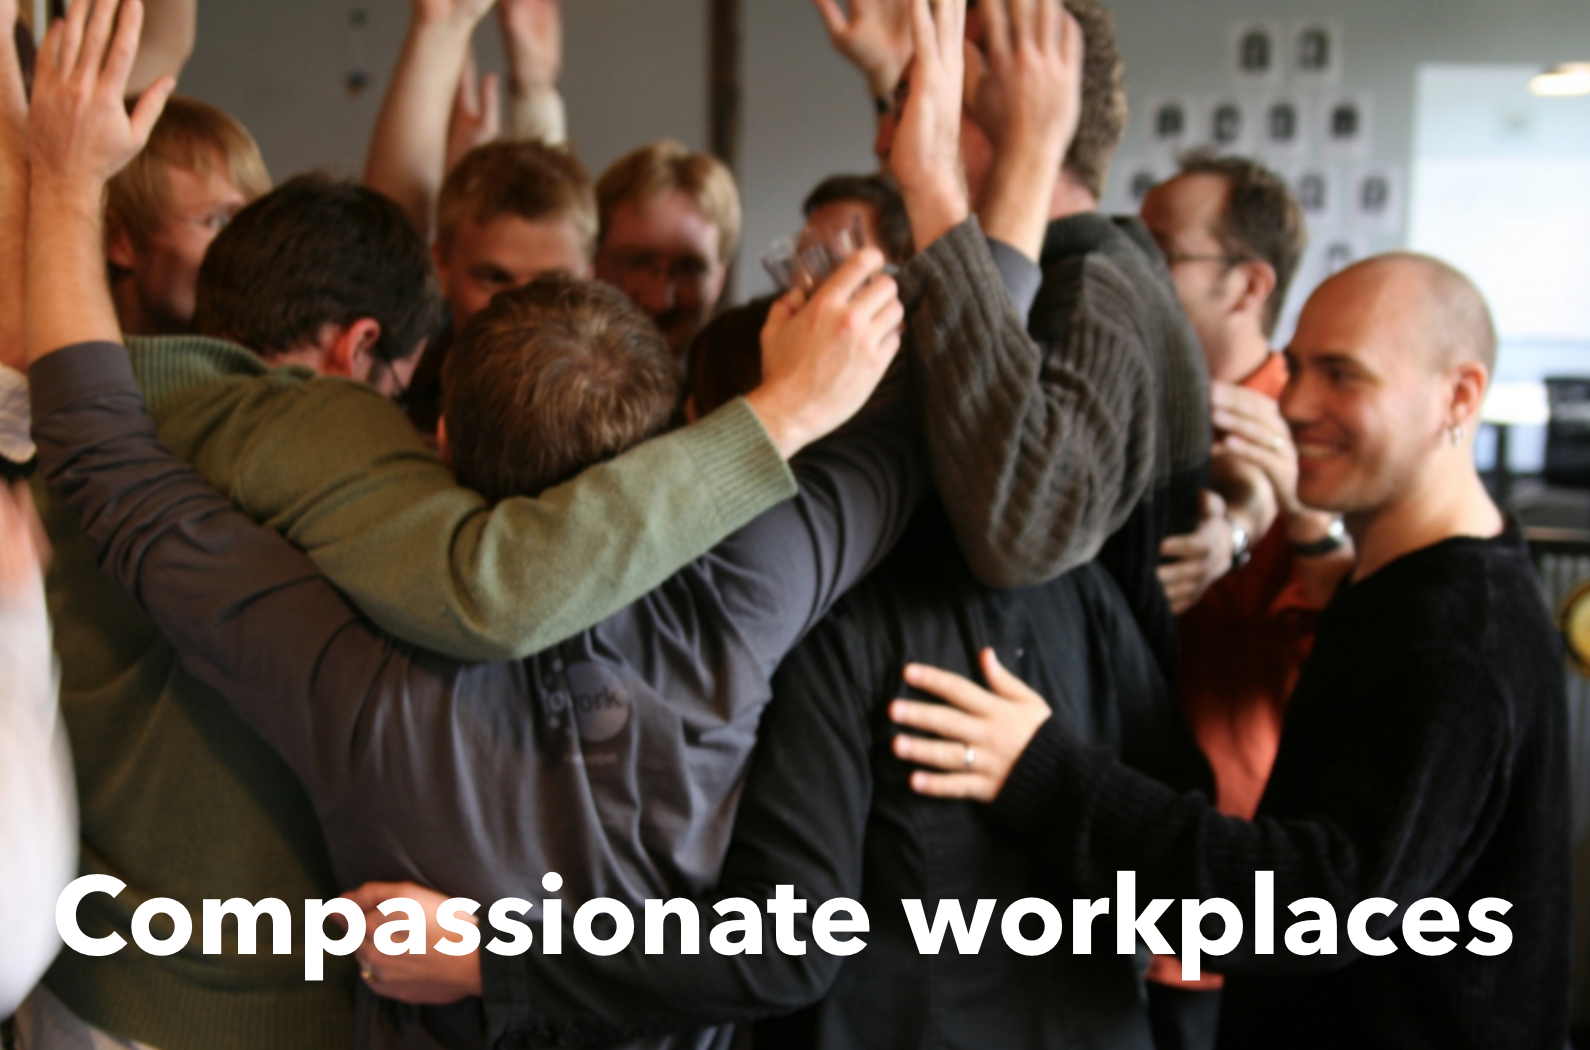 Teamwork compassionate workplace hug